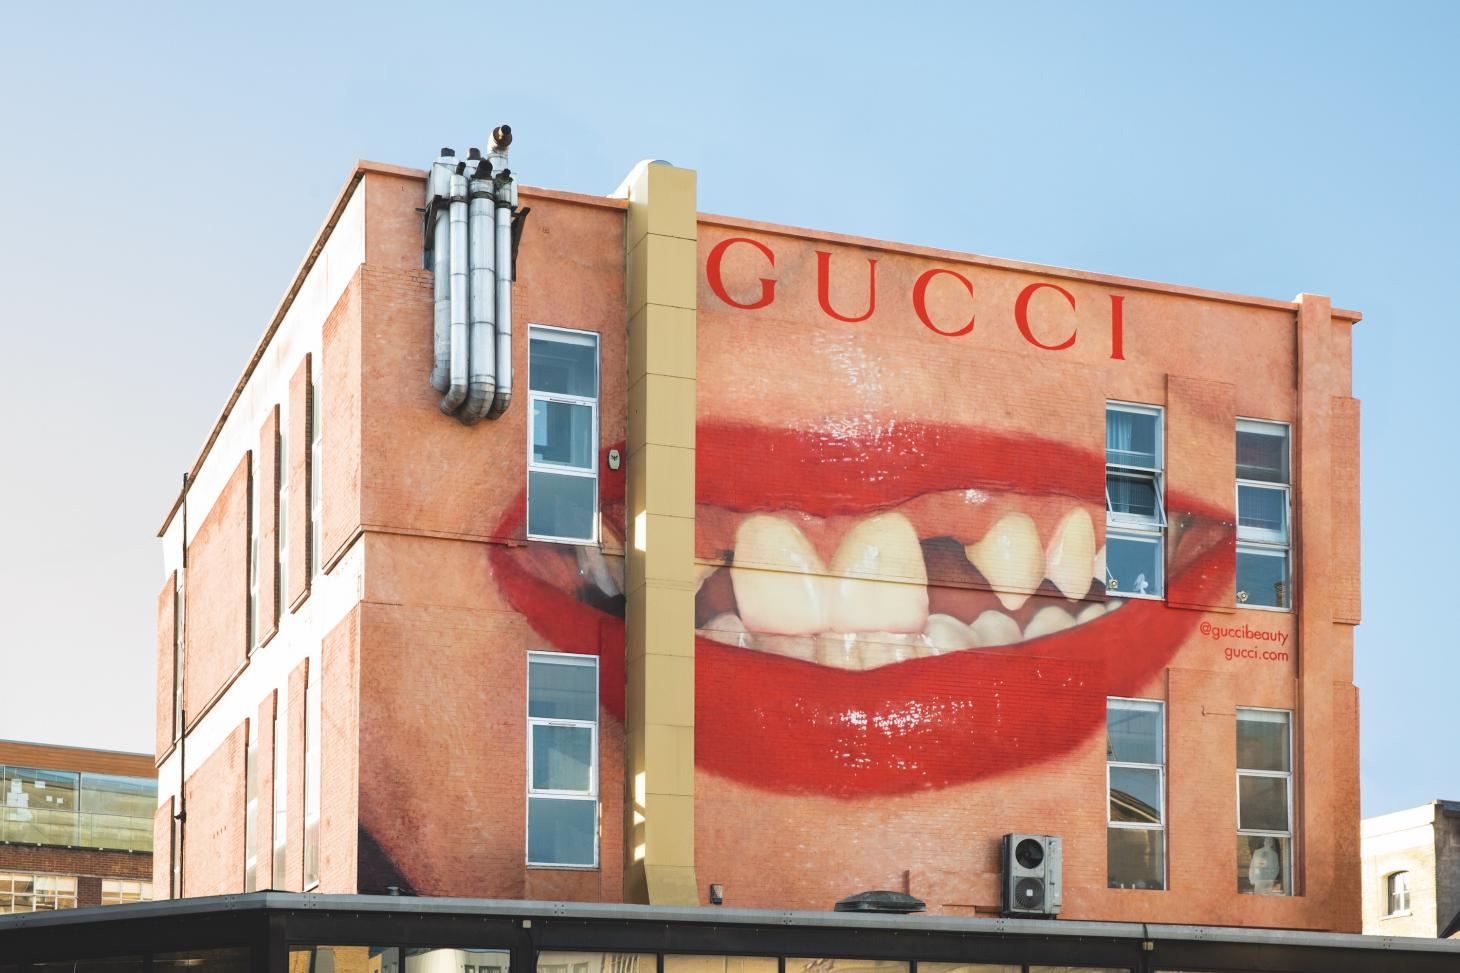 painting of red lips on a London wall